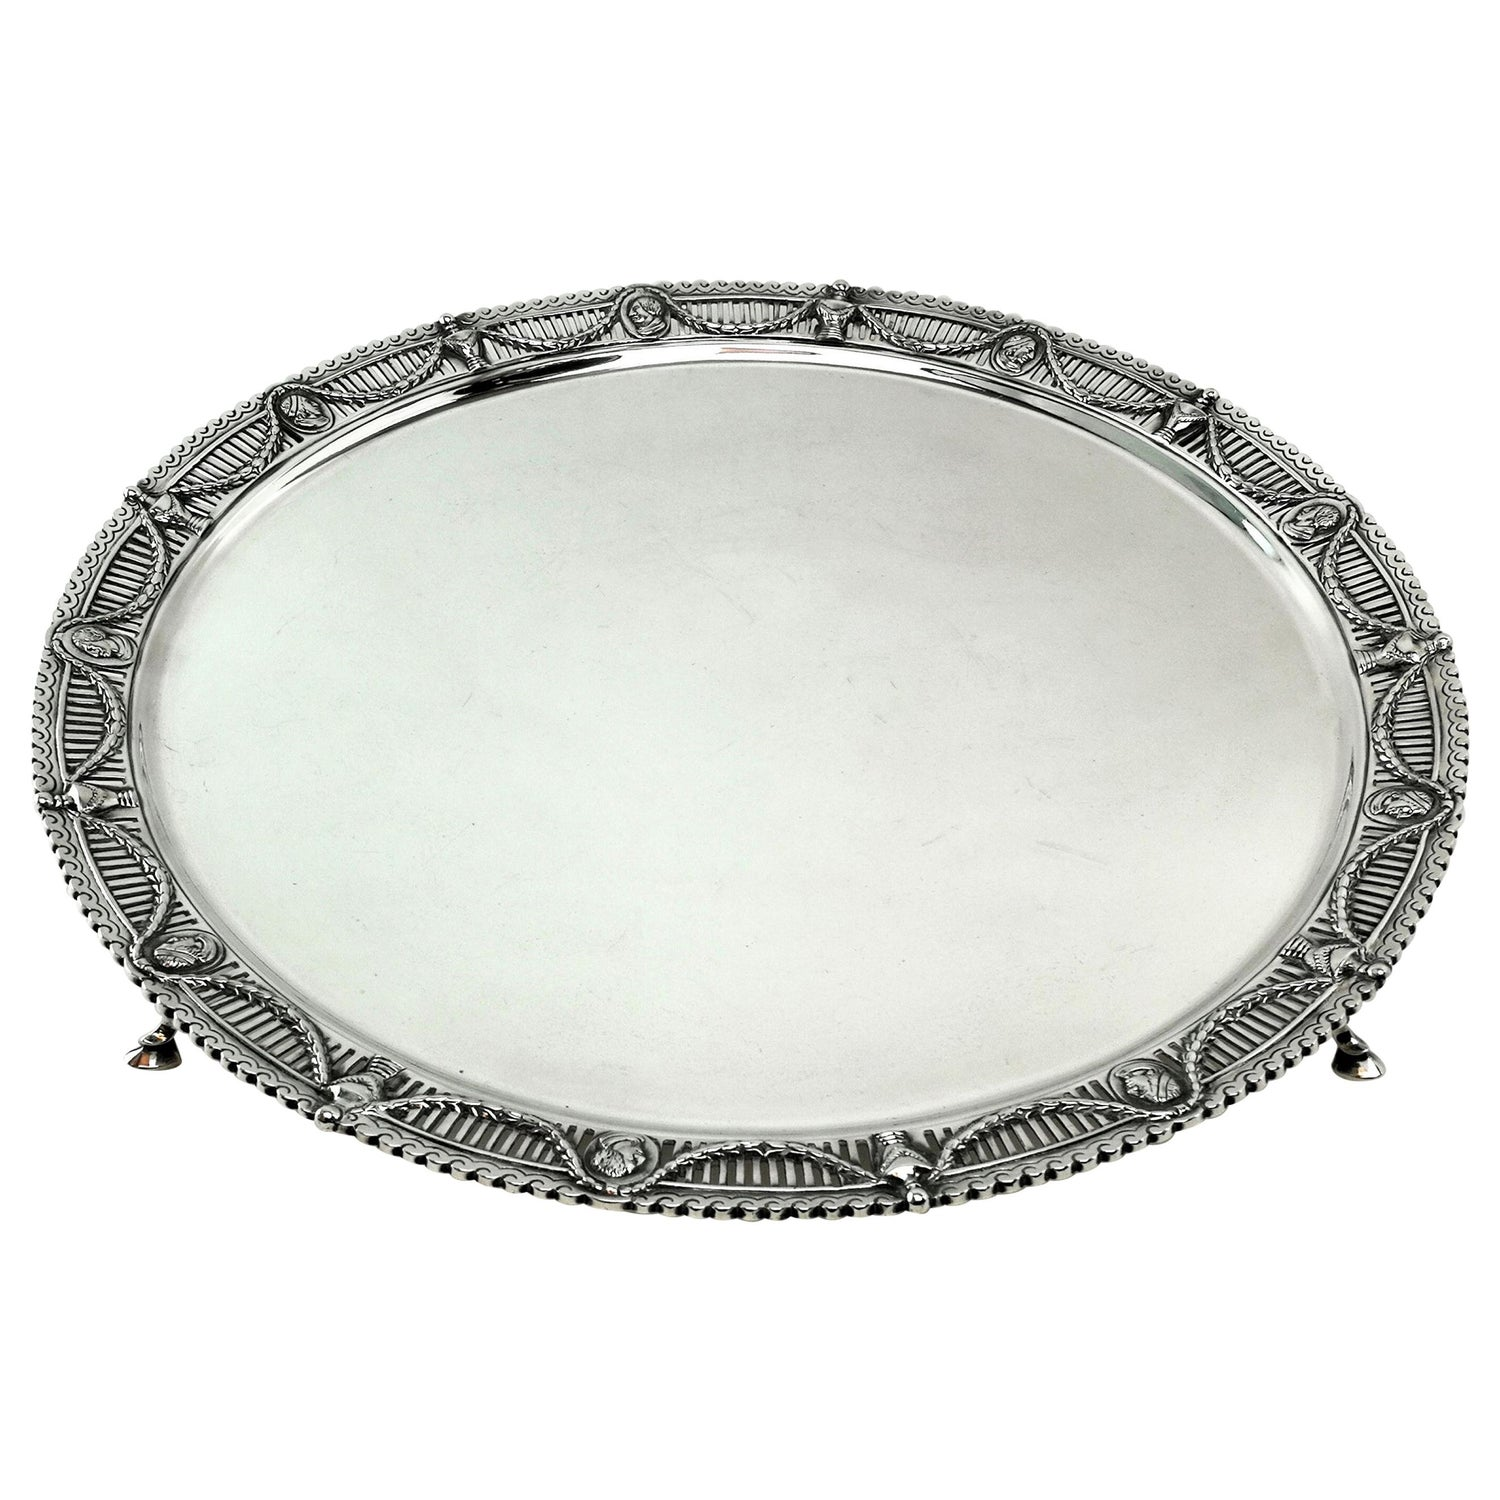 Victorian Antique Sterling Silver Salver / Tray / Platter 1897